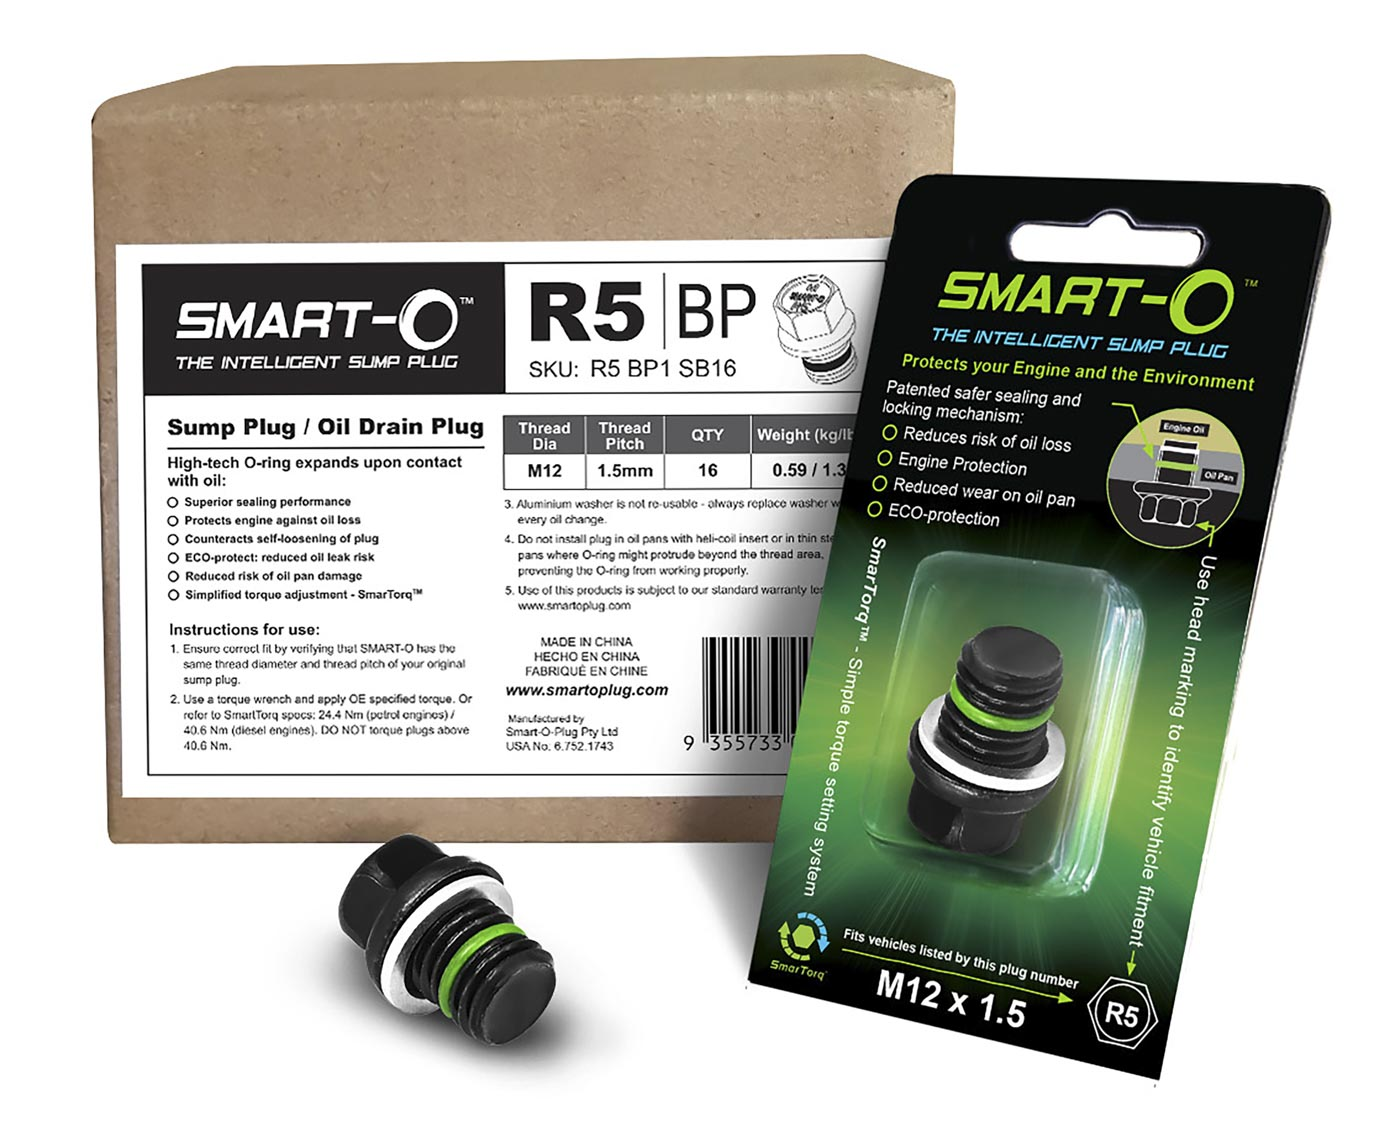 SMART-O Replenishment Box of 16 x R5BP1 Sump Plugs